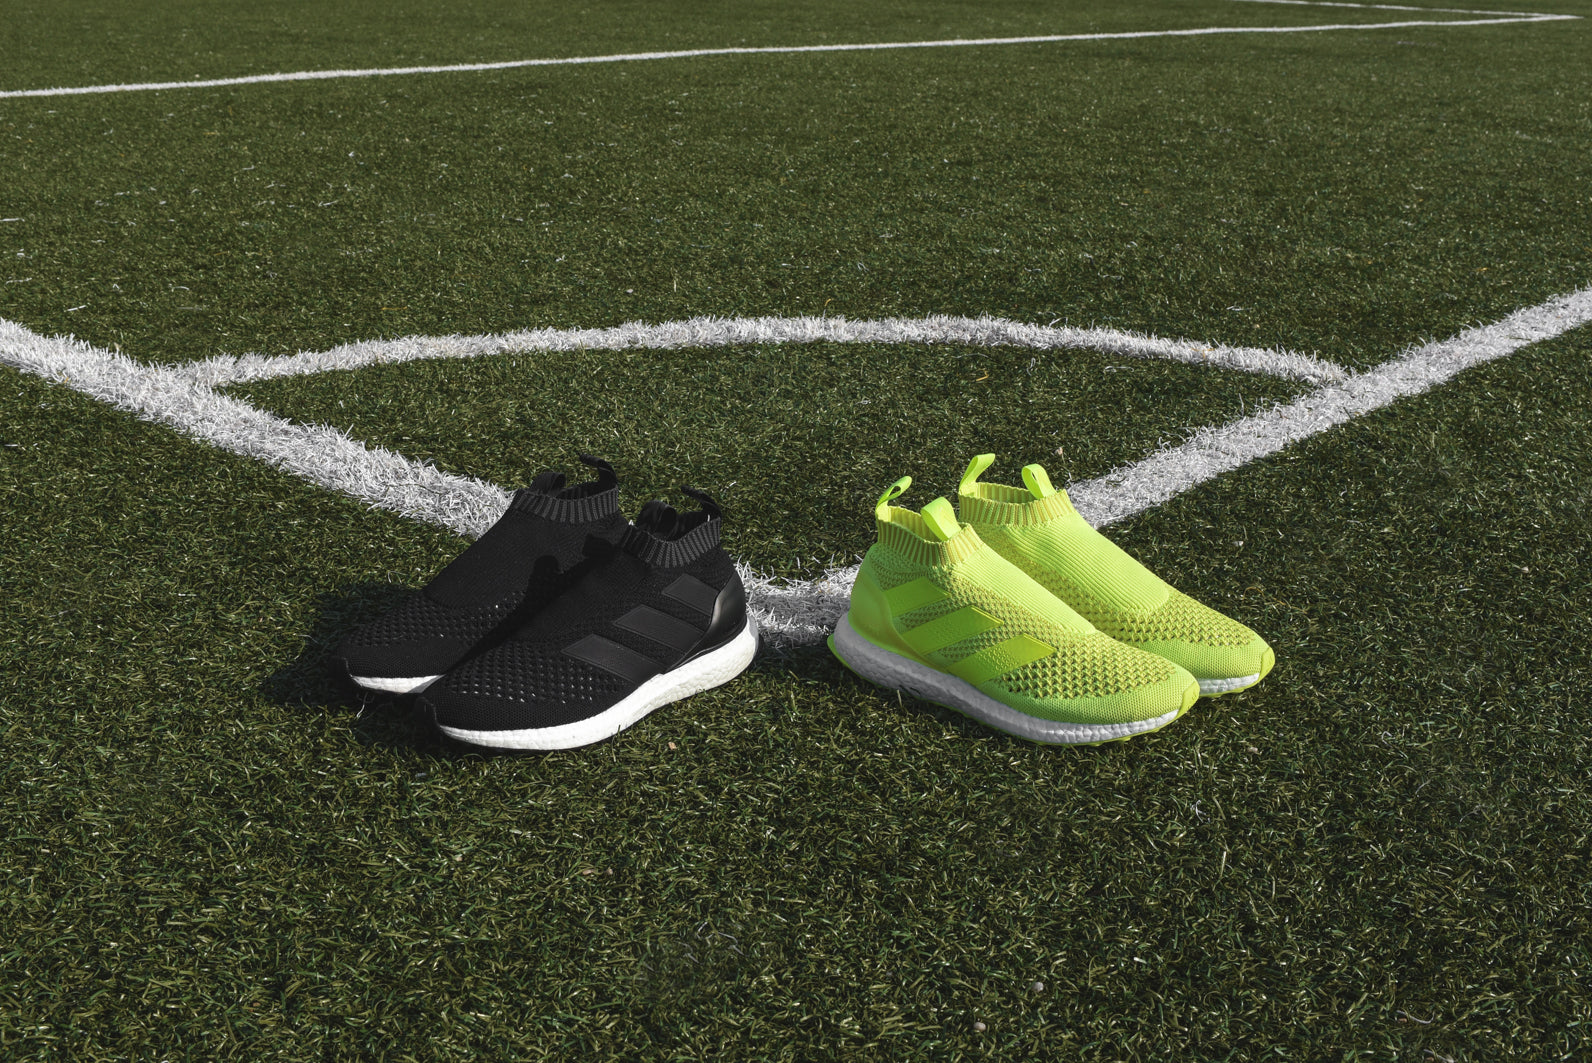 promo code fd89e 3f57d adidas ACE 16+ PureControl Ultra Boost Pack. July 13, 2016. -7. -1